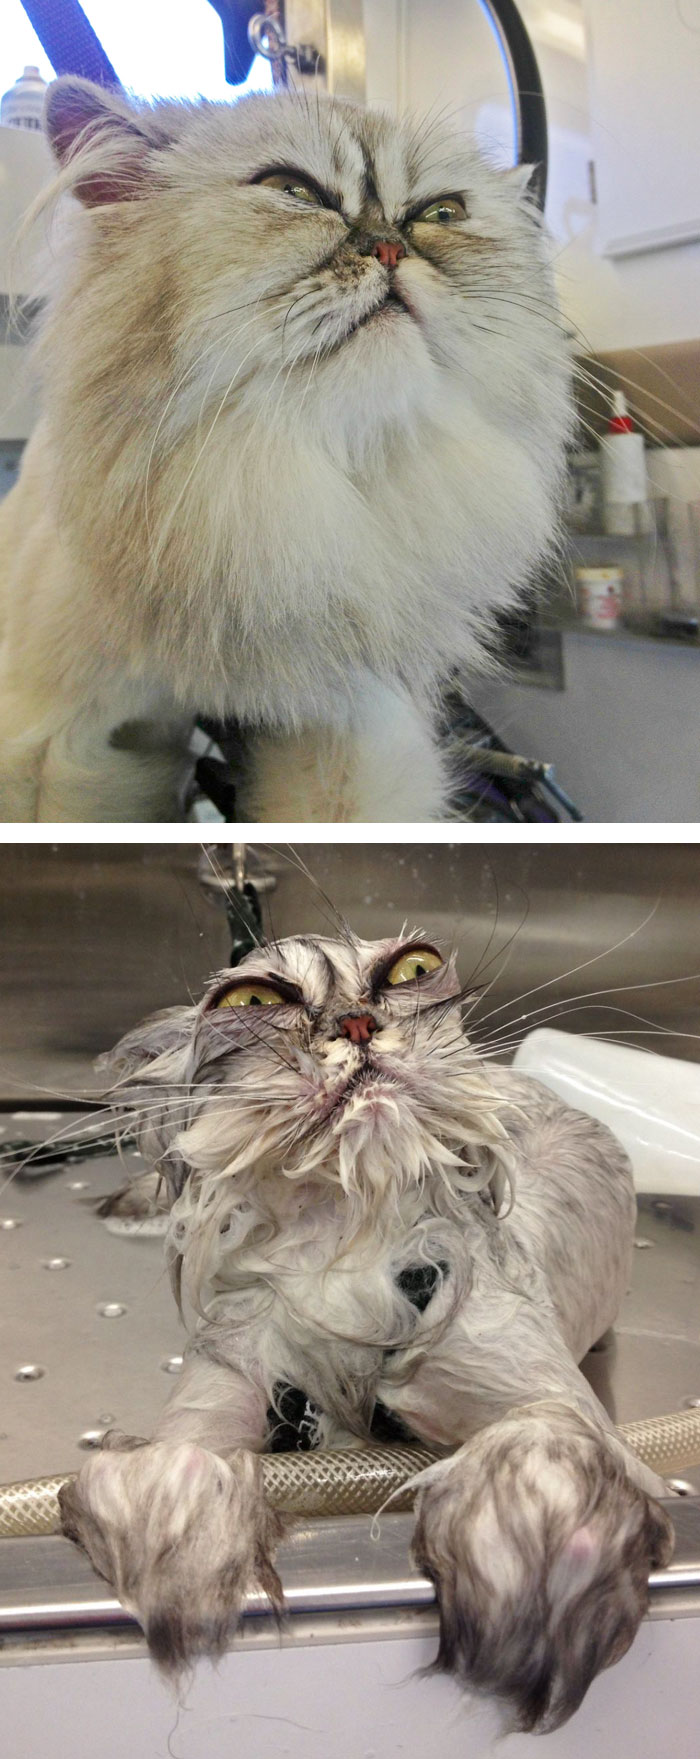 funny-wet-pets-before-after-bath-dogs-cats-49-5728af03c4553_700.jpg